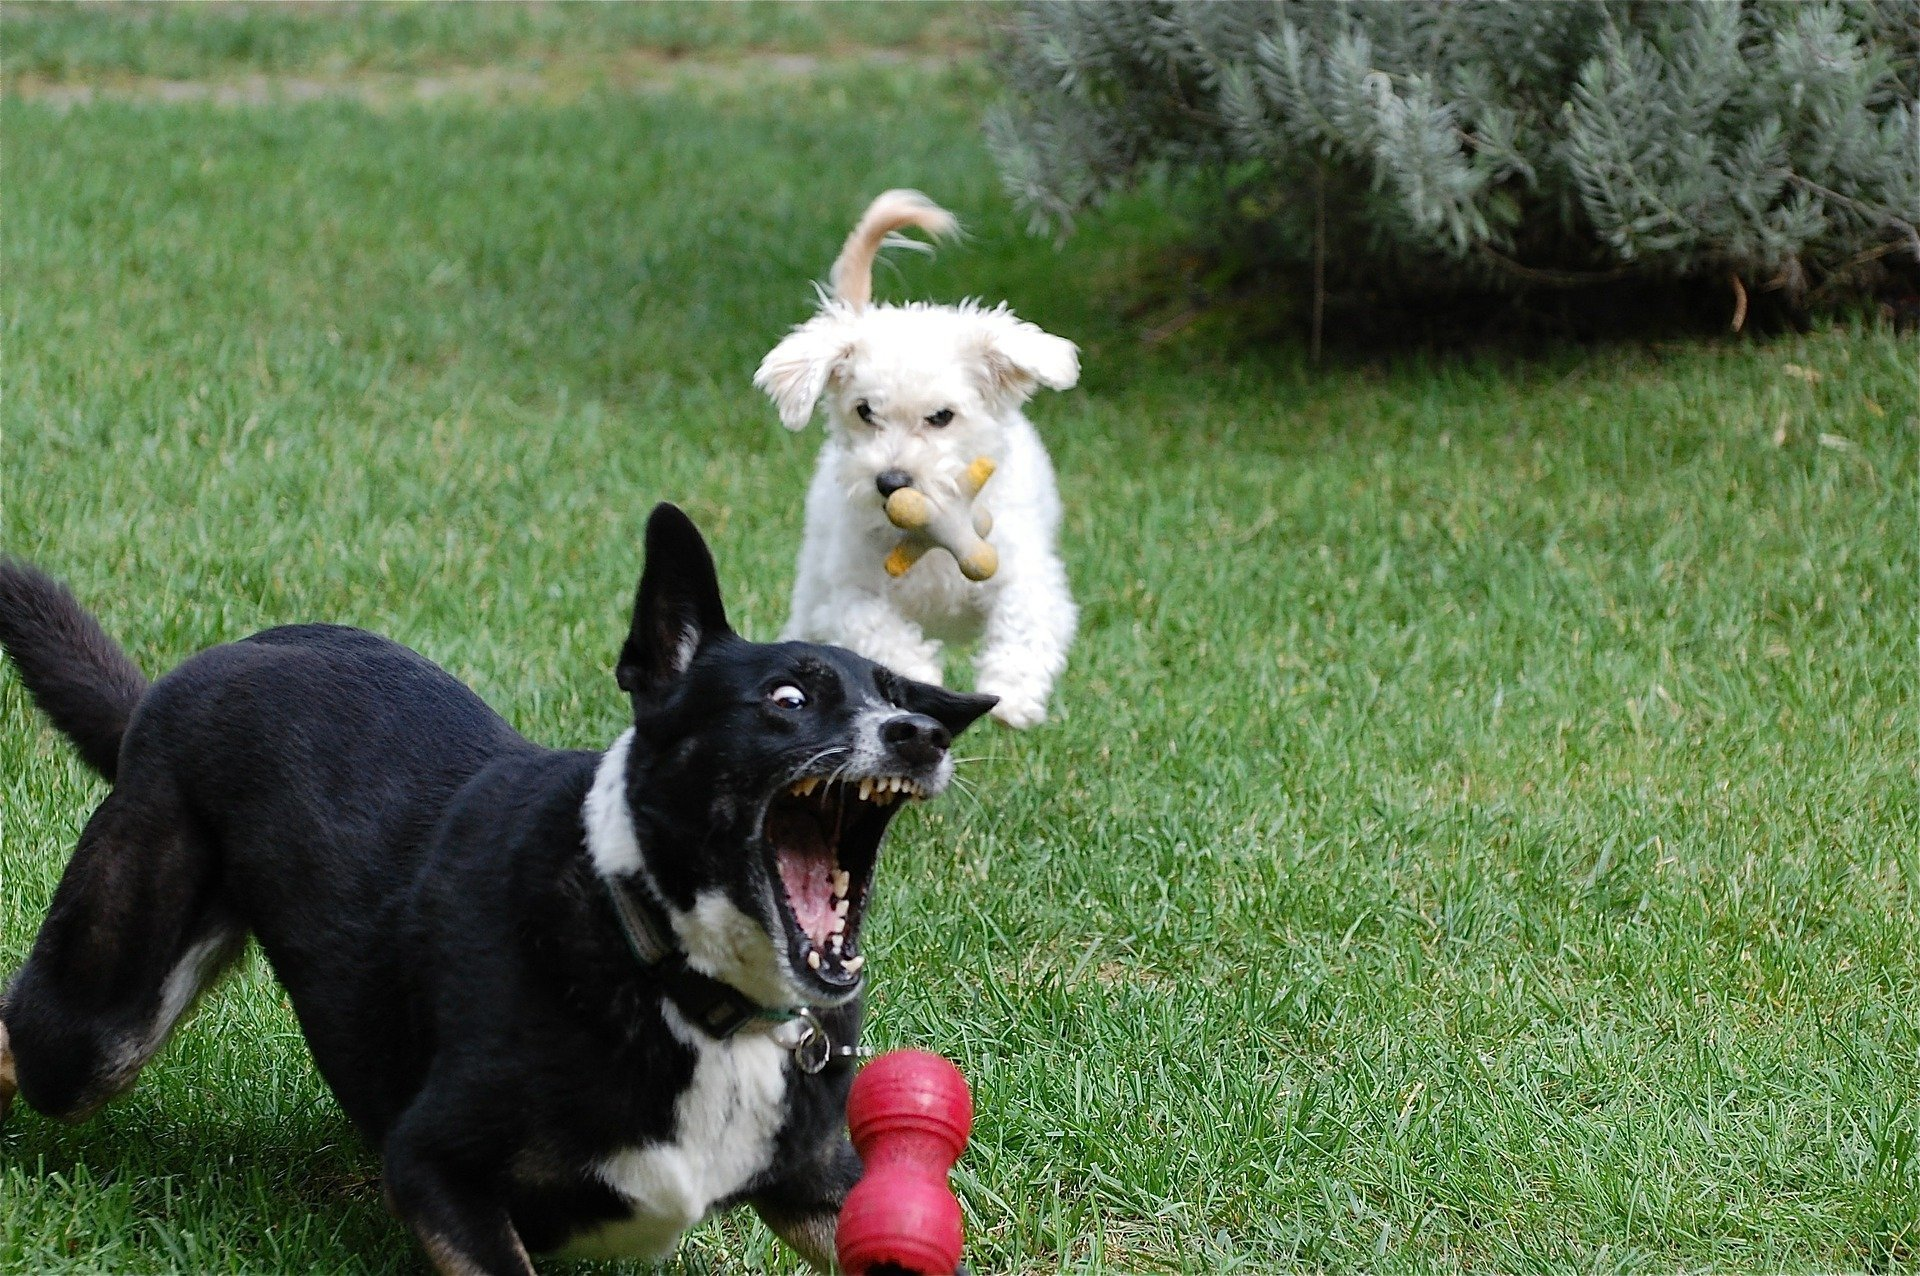 Dogs Playing In Yard - Entertaining Backyard Games To Play With Your Dog